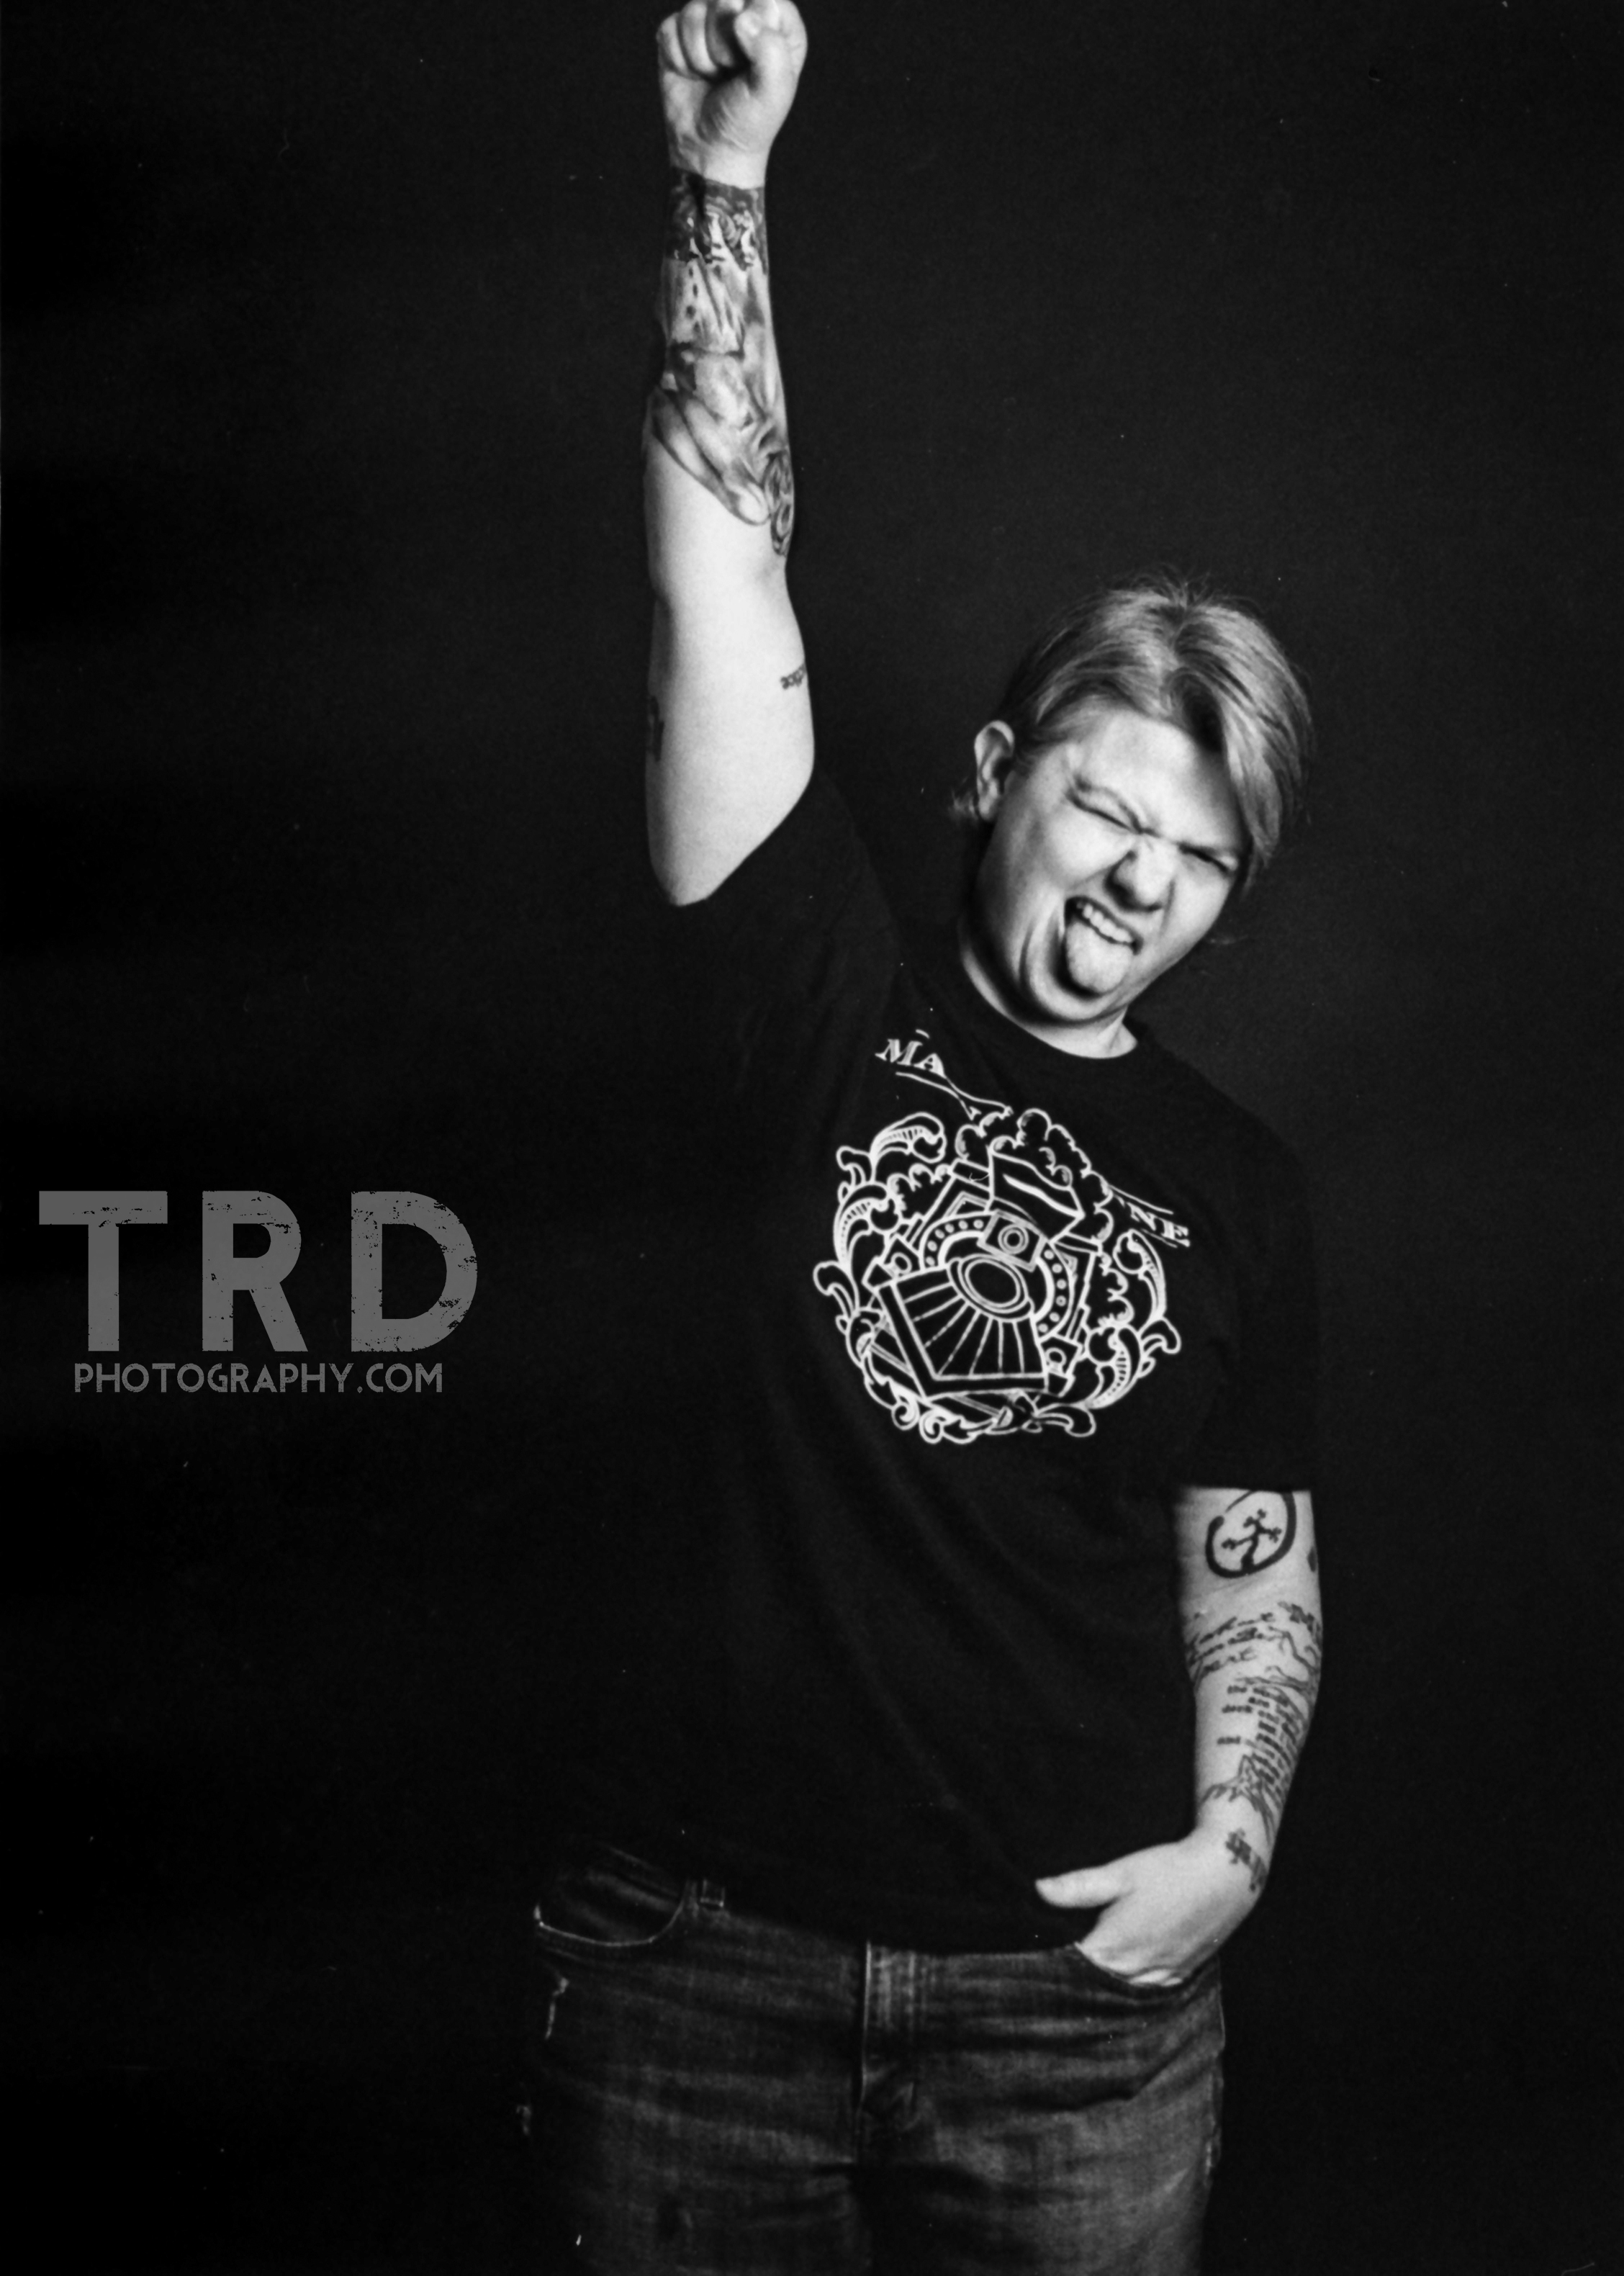 Minolta XG 1 - Kodak Tri X - Tattoo Artist - Jennifer Edge - Main Line Ink - TRD Photography